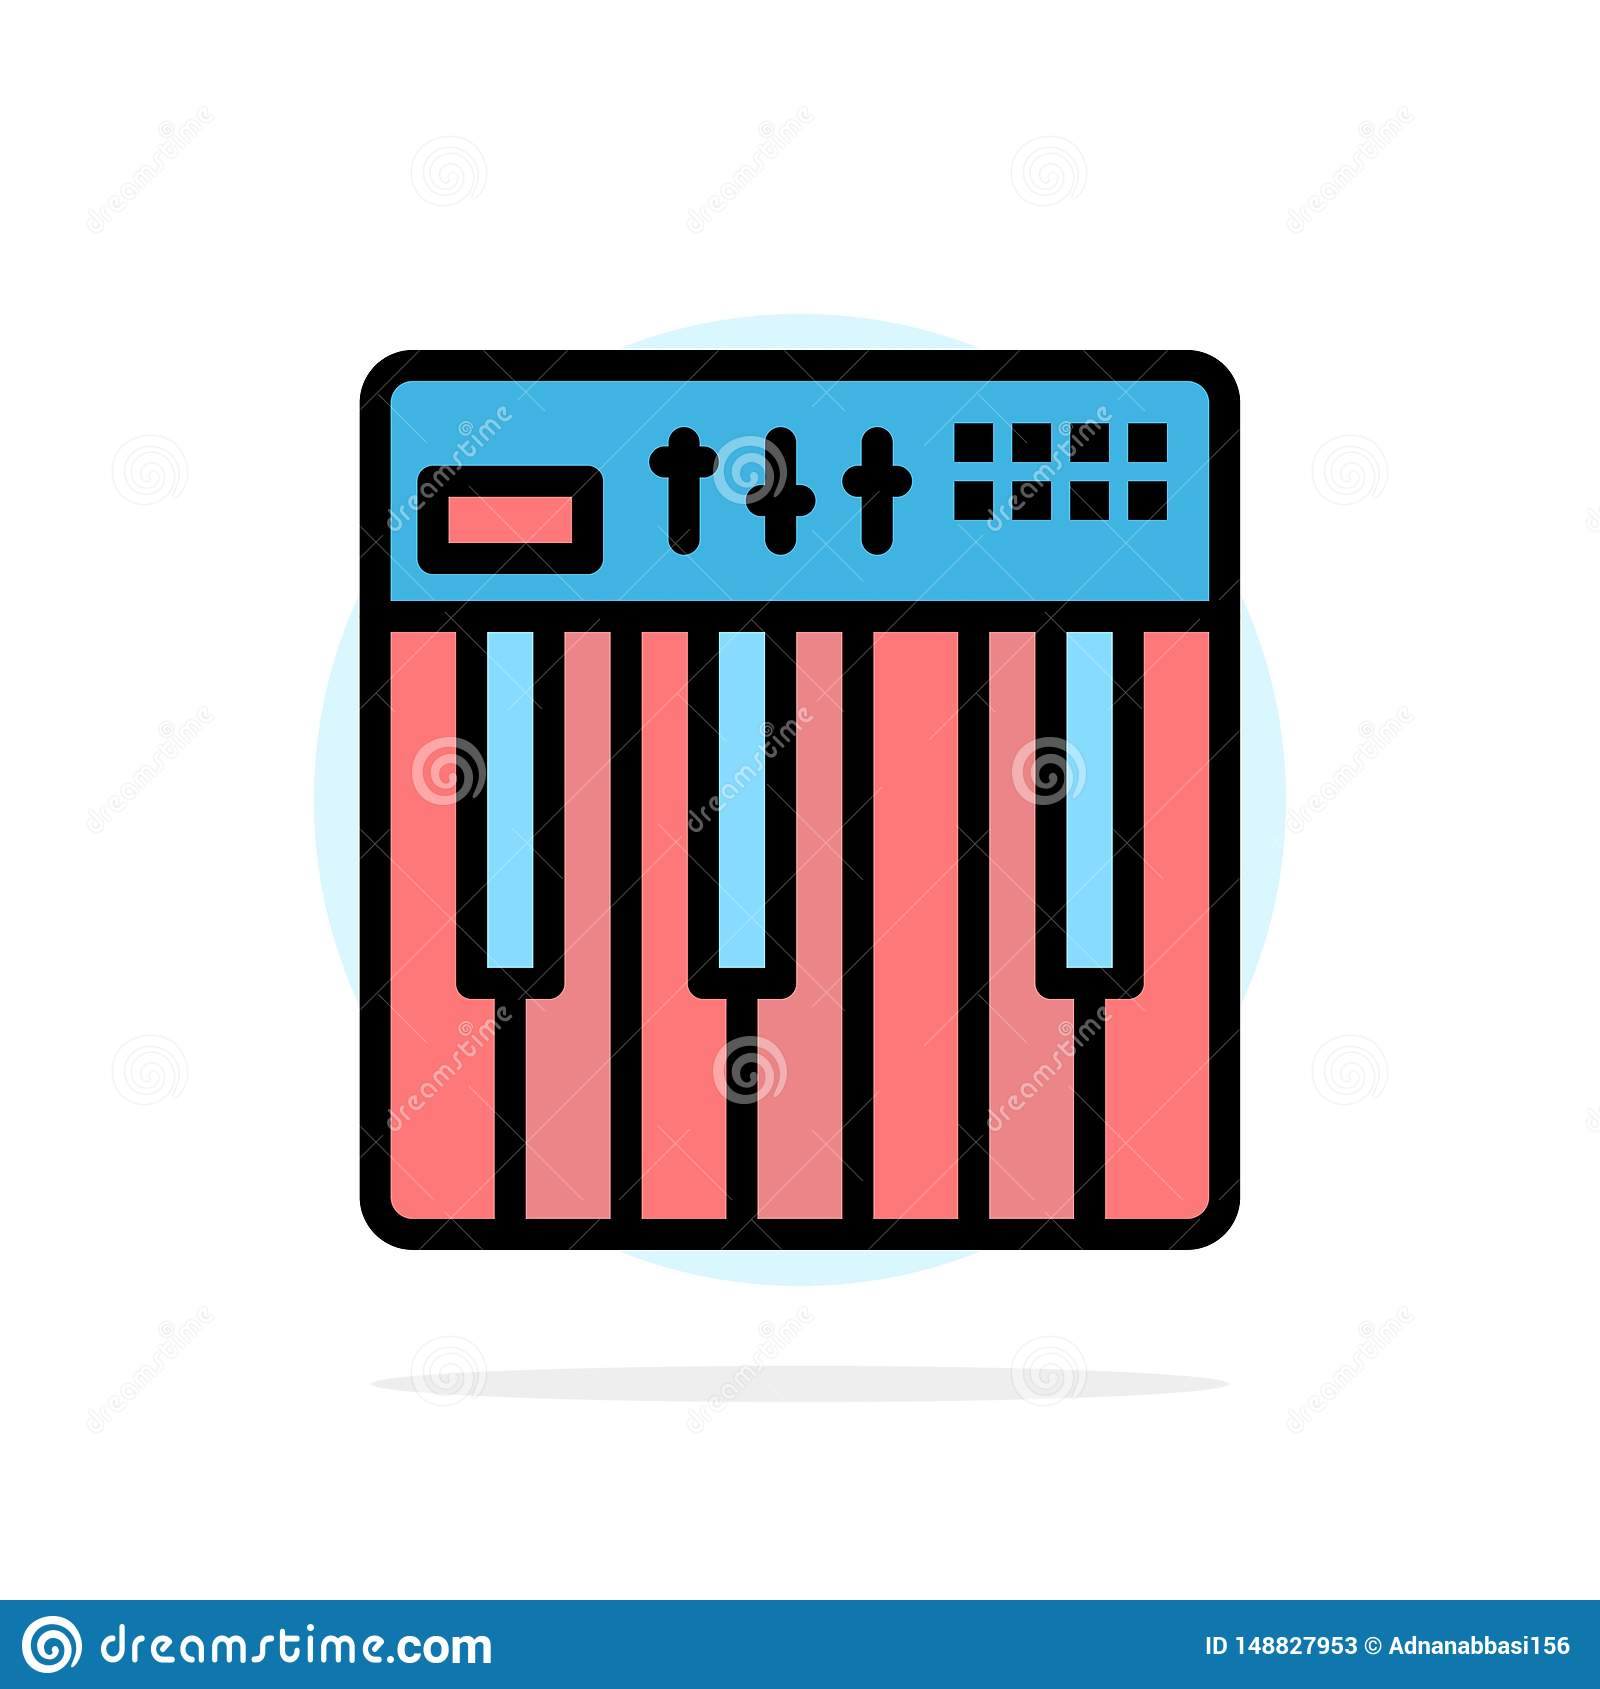 Controller, Hardware, Keyboard, Midi, Music Abstract Circle Background Flat color Icon